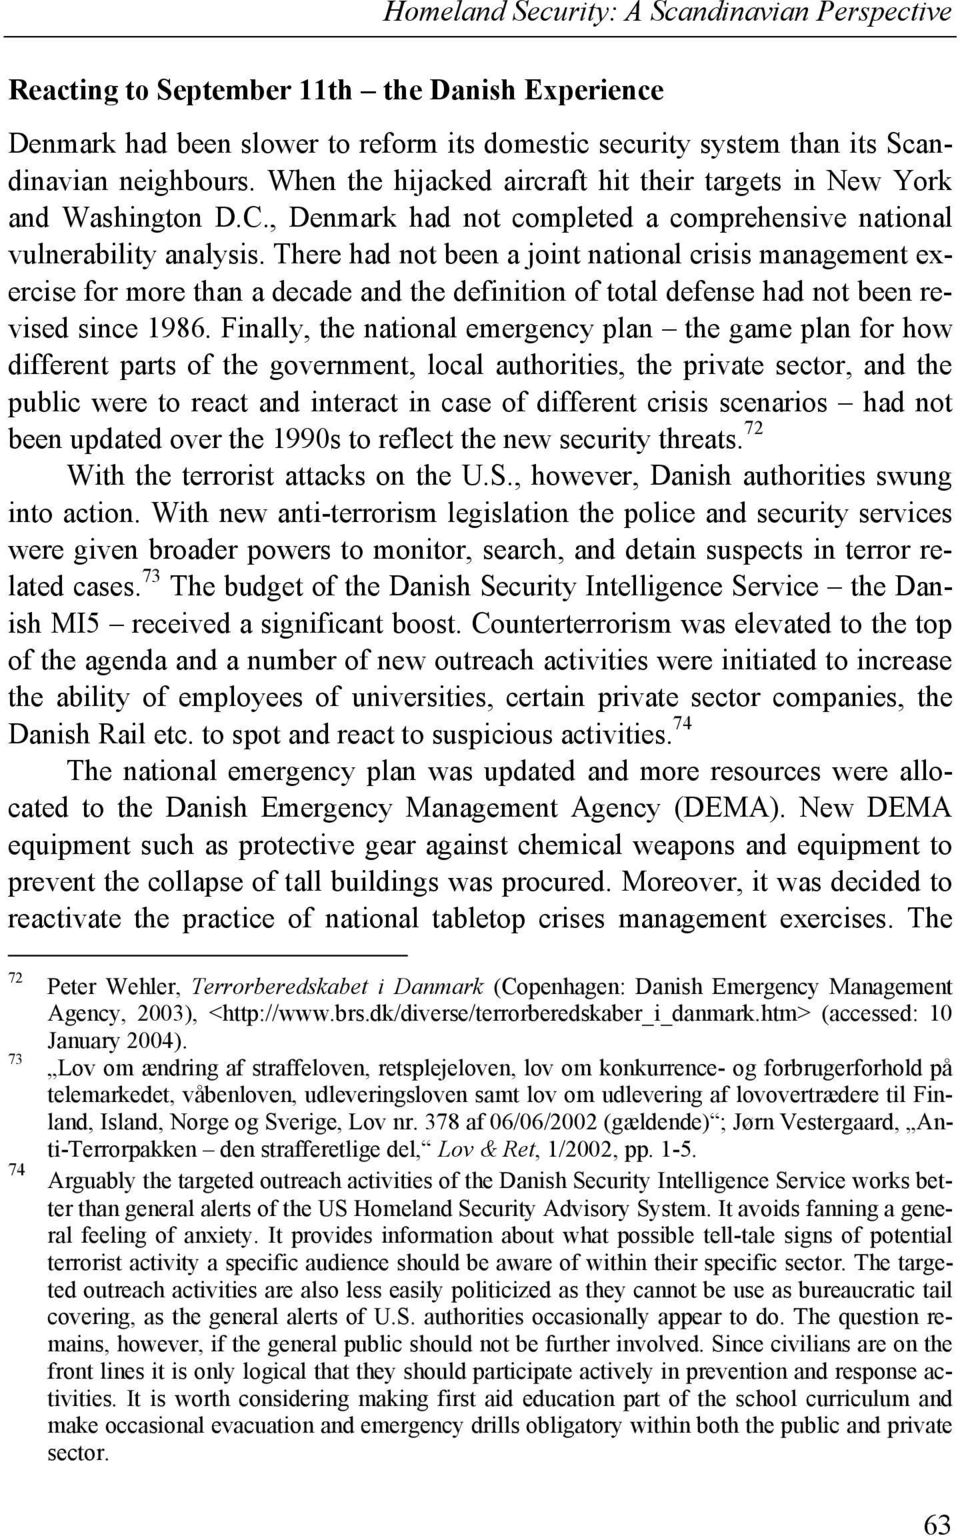 There had not been a joint national crisis management exercise for more than a decade and the definition of total defense had not been revised since 1986.